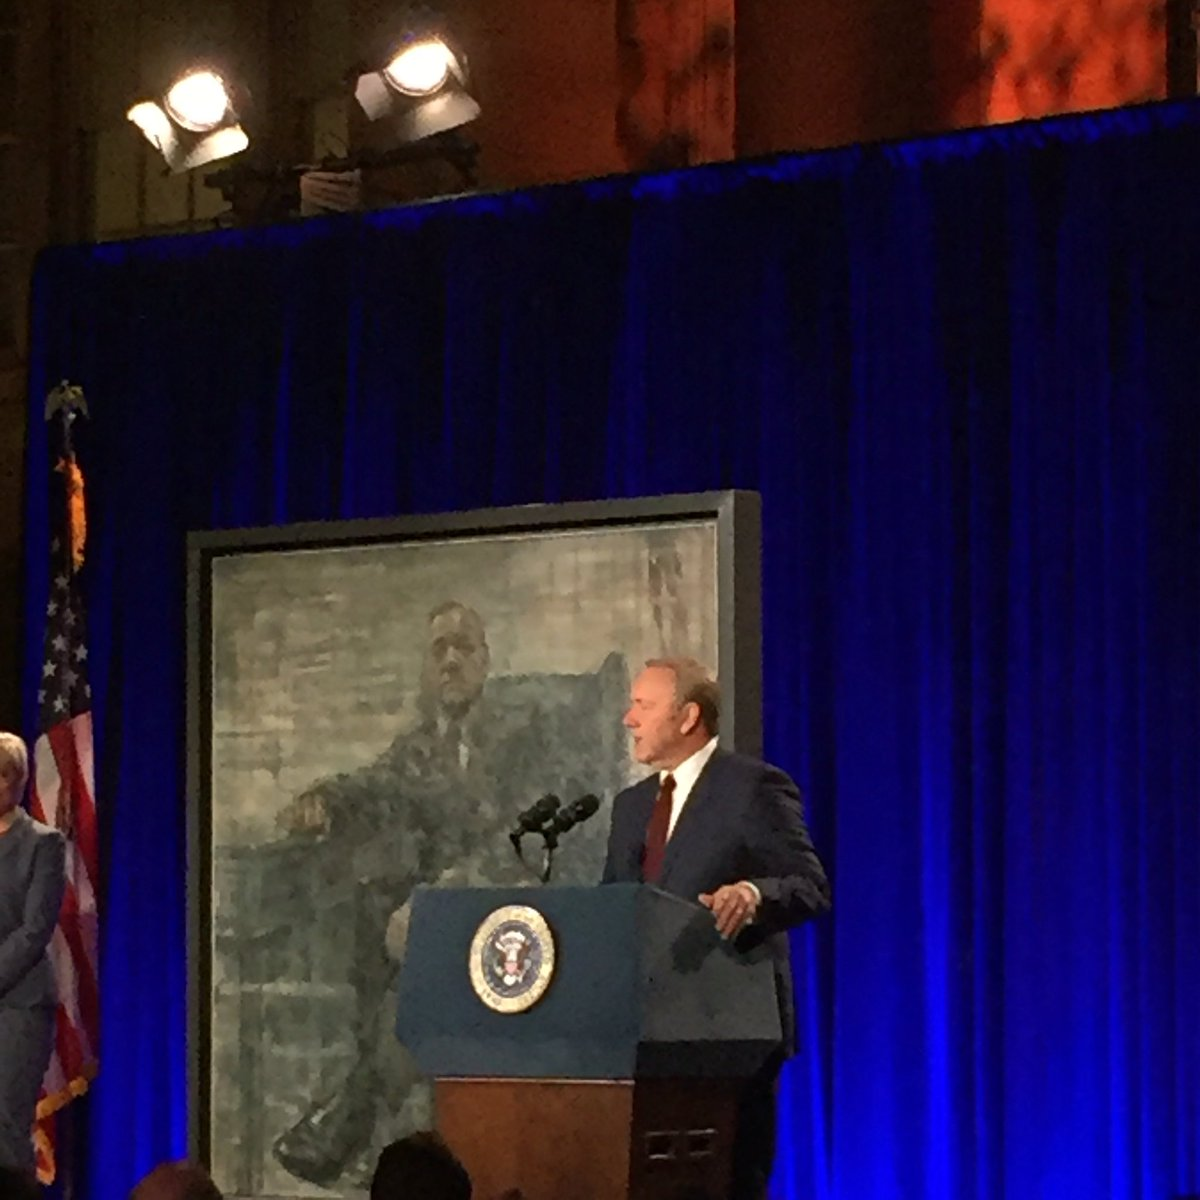 We're honored to welcome President Frank Underwood into our midst for his official portrait unveiling  tonight. https://t.co/ZHezfFW52o